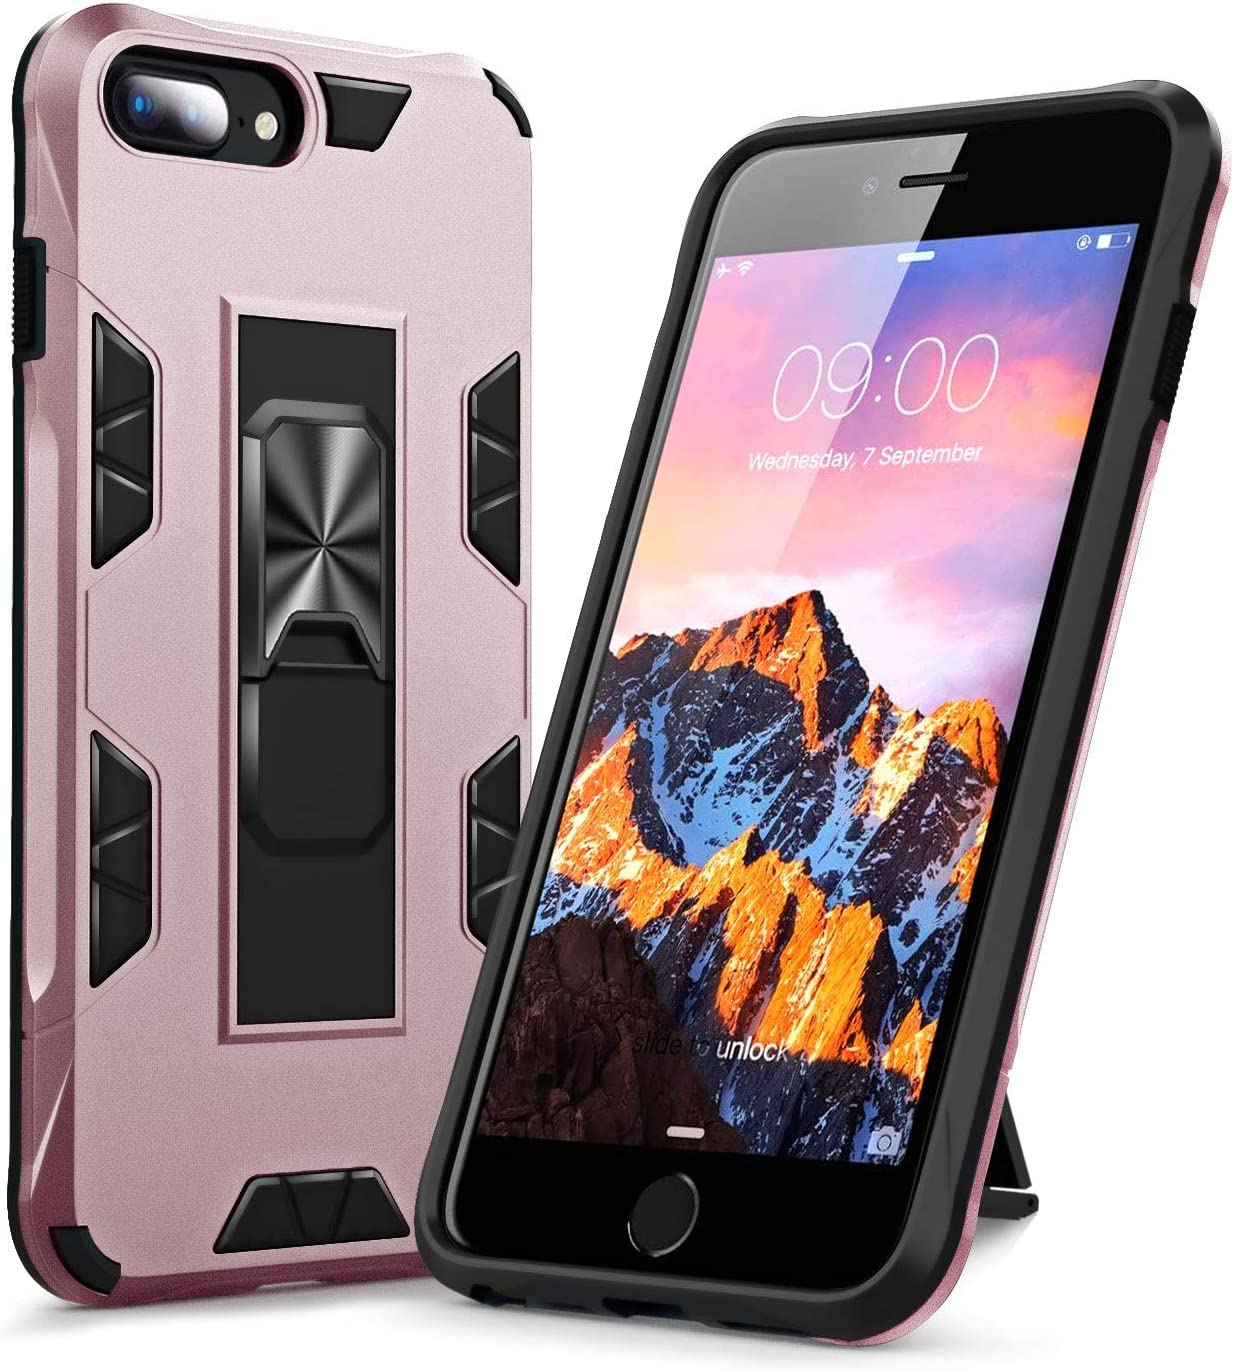 KUMEEK for iPhone 7 Plus Case, iPhone 8 Plus Case, Kickstand Shockproof Armor Heavy Duty Dual Layer Full Body Protective Rugged Cover Bumper Case for iPhone 8 Plus/iPhone 7 Plus-Rose Gold